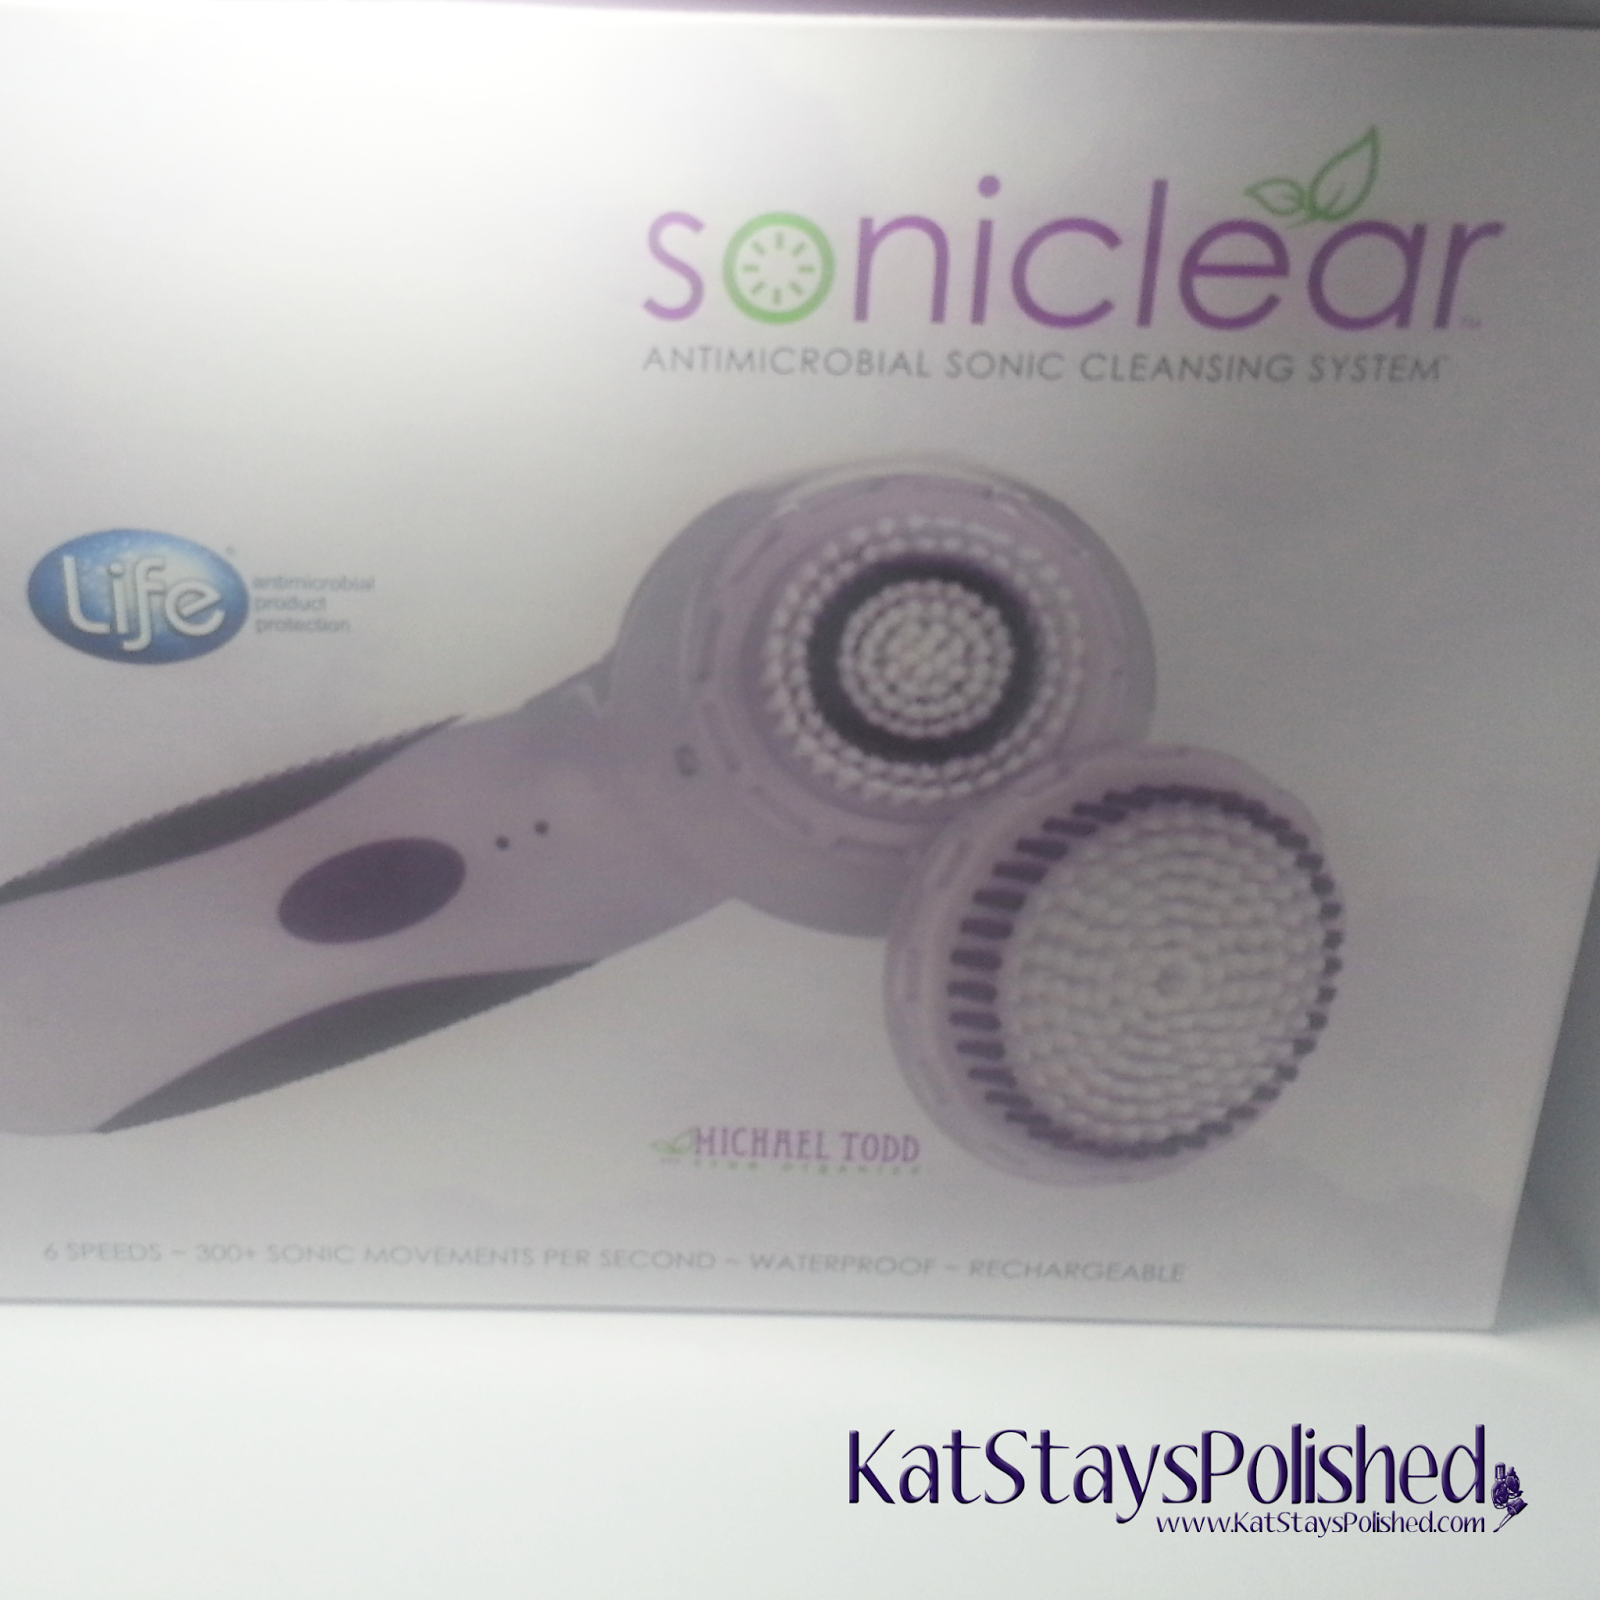 Michael Todd Soniclear | Kat Stays Polished